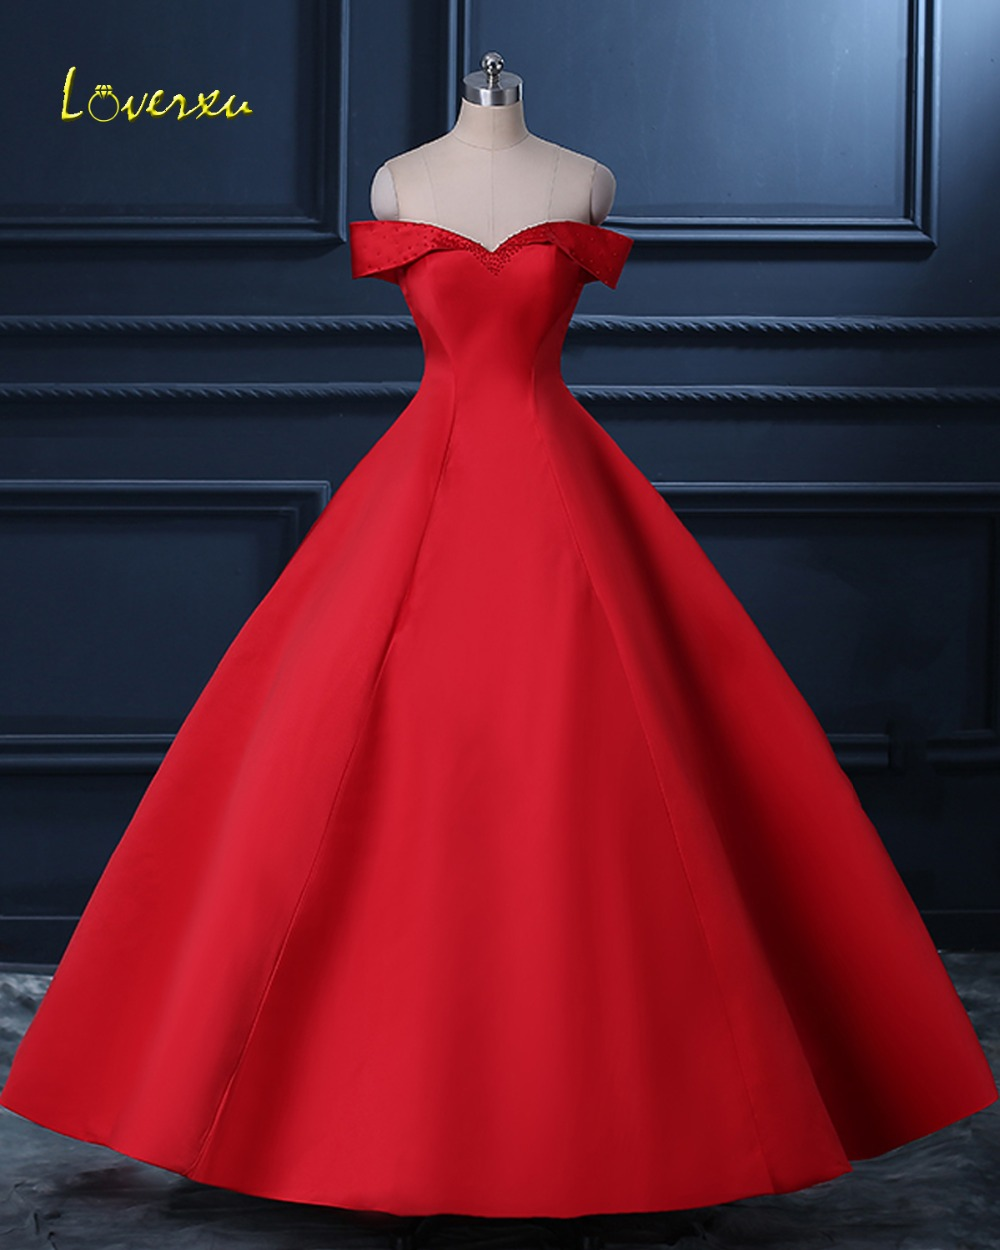 Loverxu Romantic Sweetheart Lace Up A-Line Red   Prom     Dresses   2019 New Delicate Beaded Formal Party Gown Vestido de Festa Hot Sale